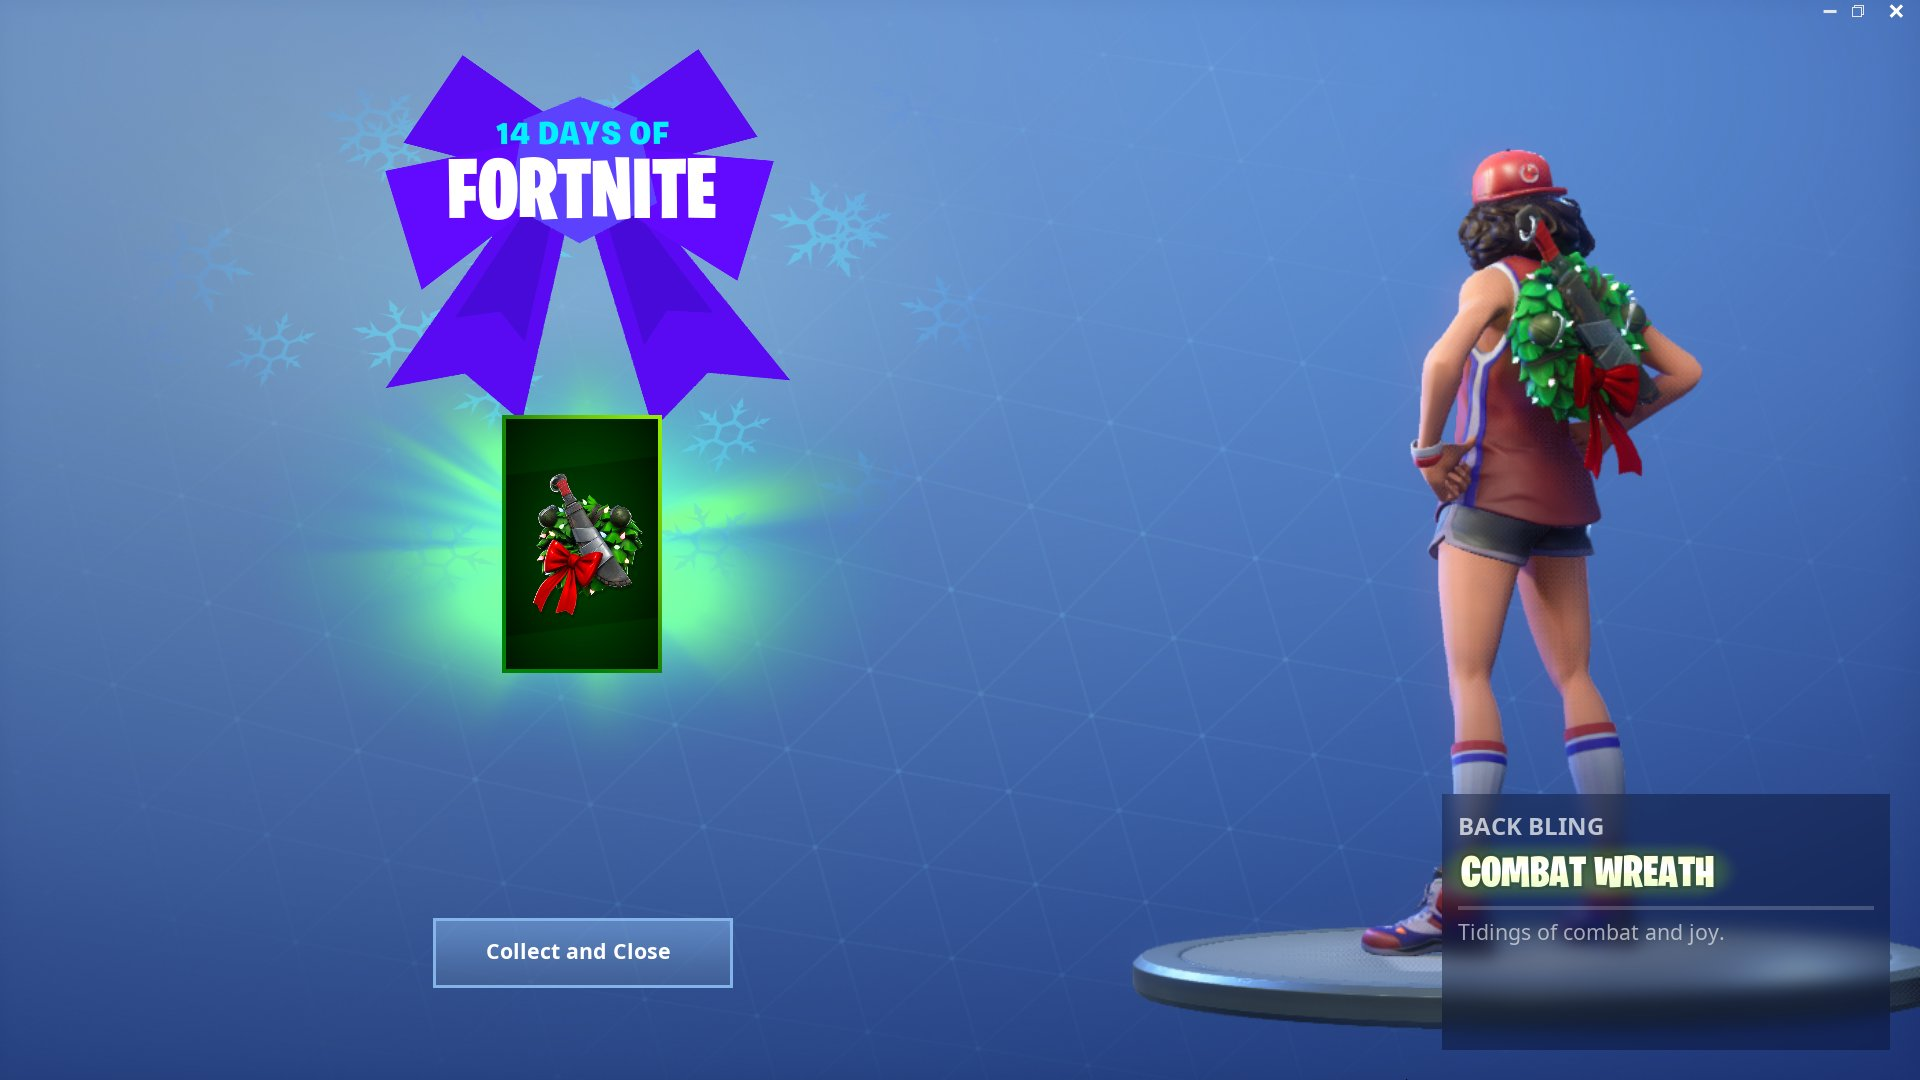 14 Days of Fortnite Reward - Day 5